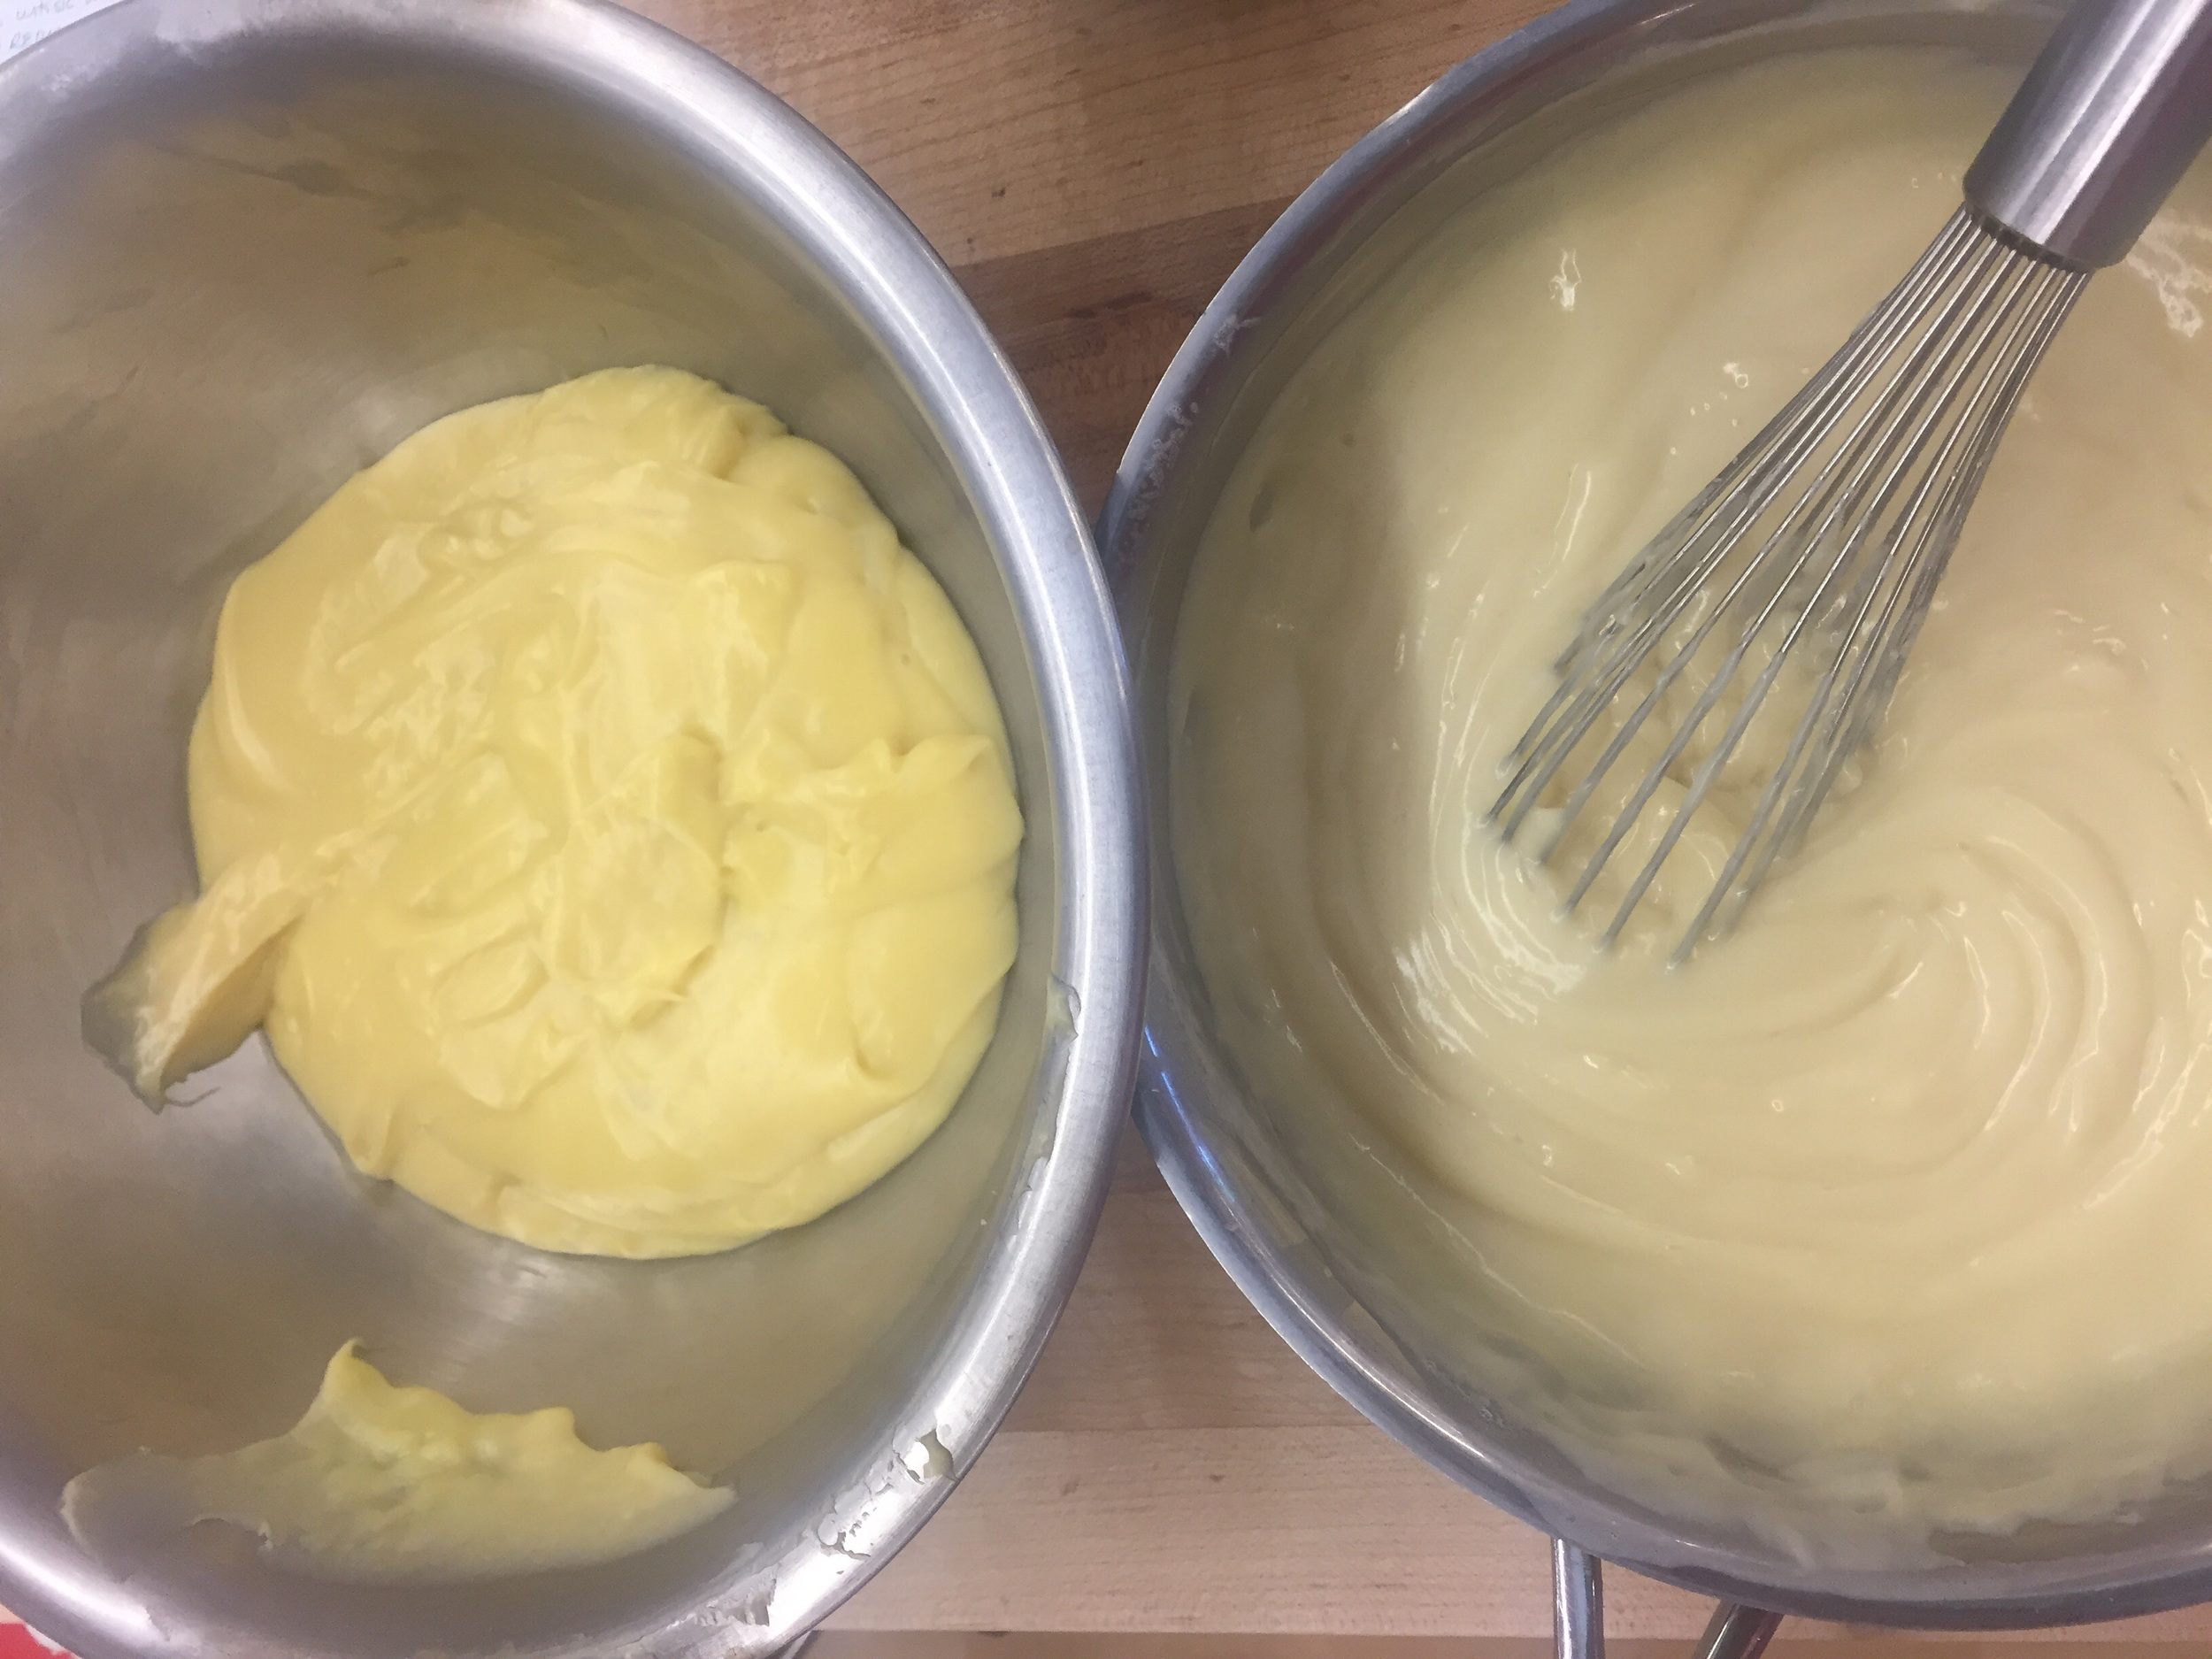 The BAD pastry cream on the left...the CORRECT pastry cream on the right